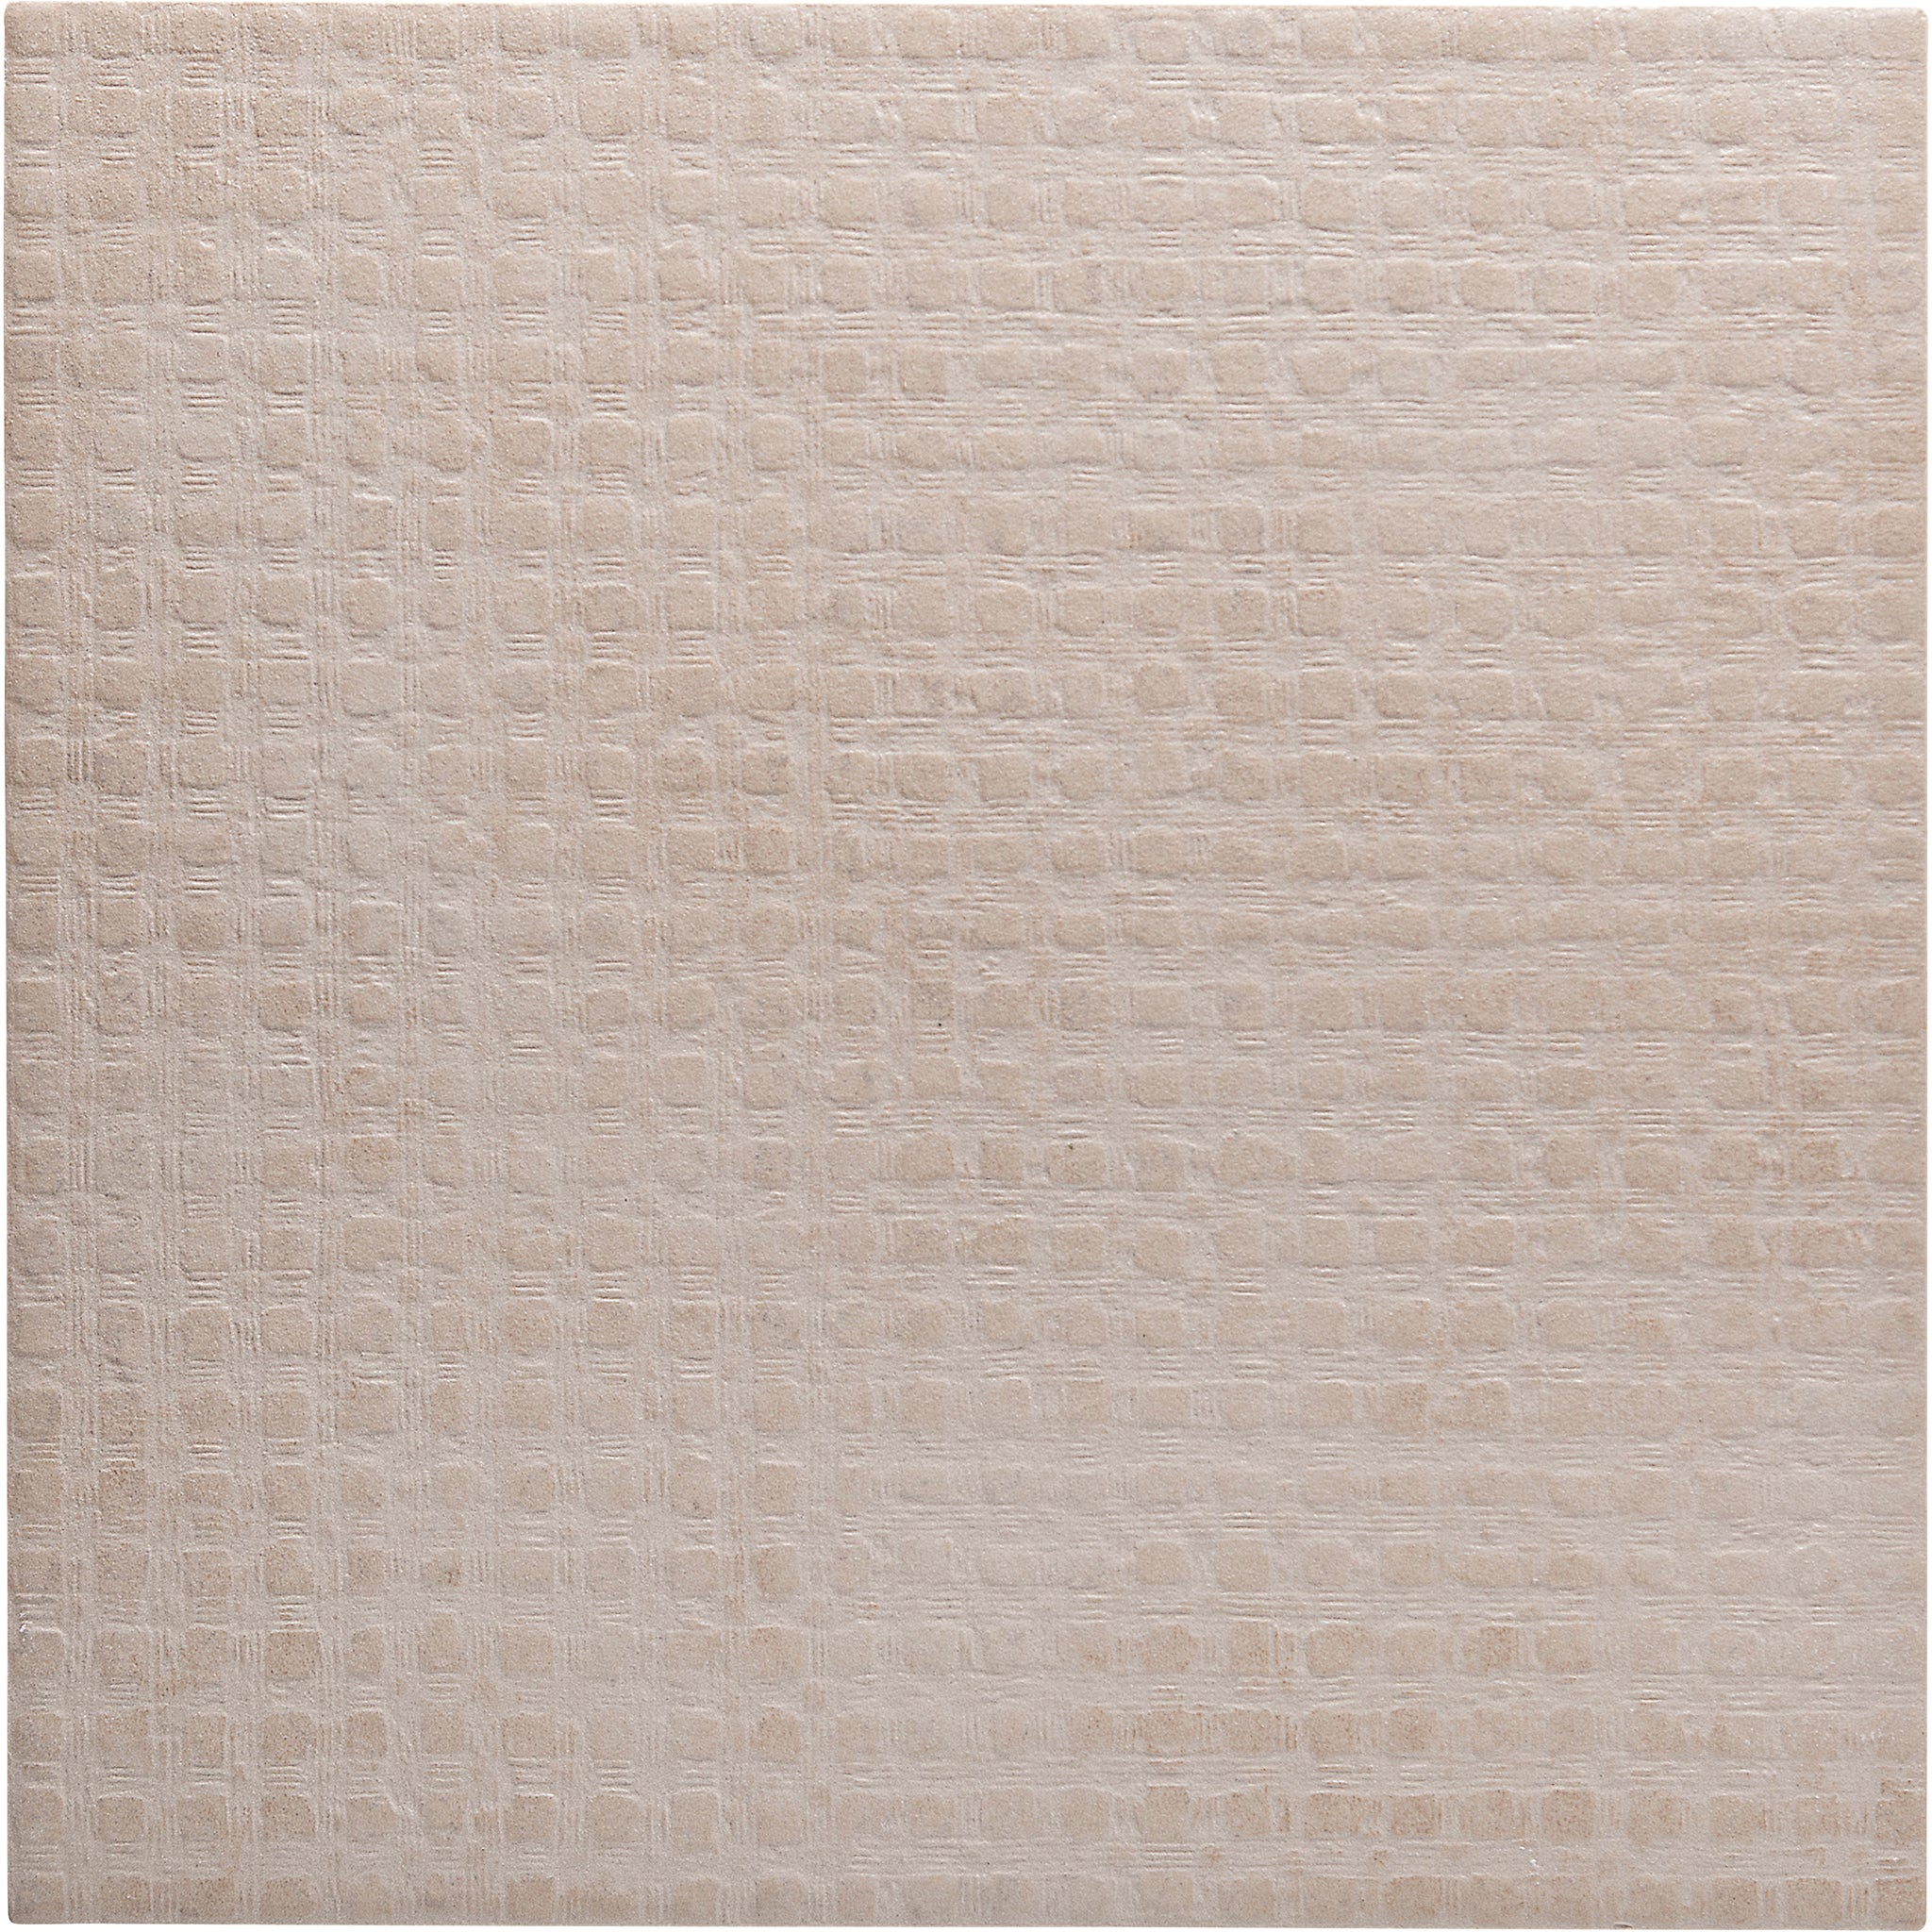 Ambient Series GT06176 Vitrified Tile 315x315mm